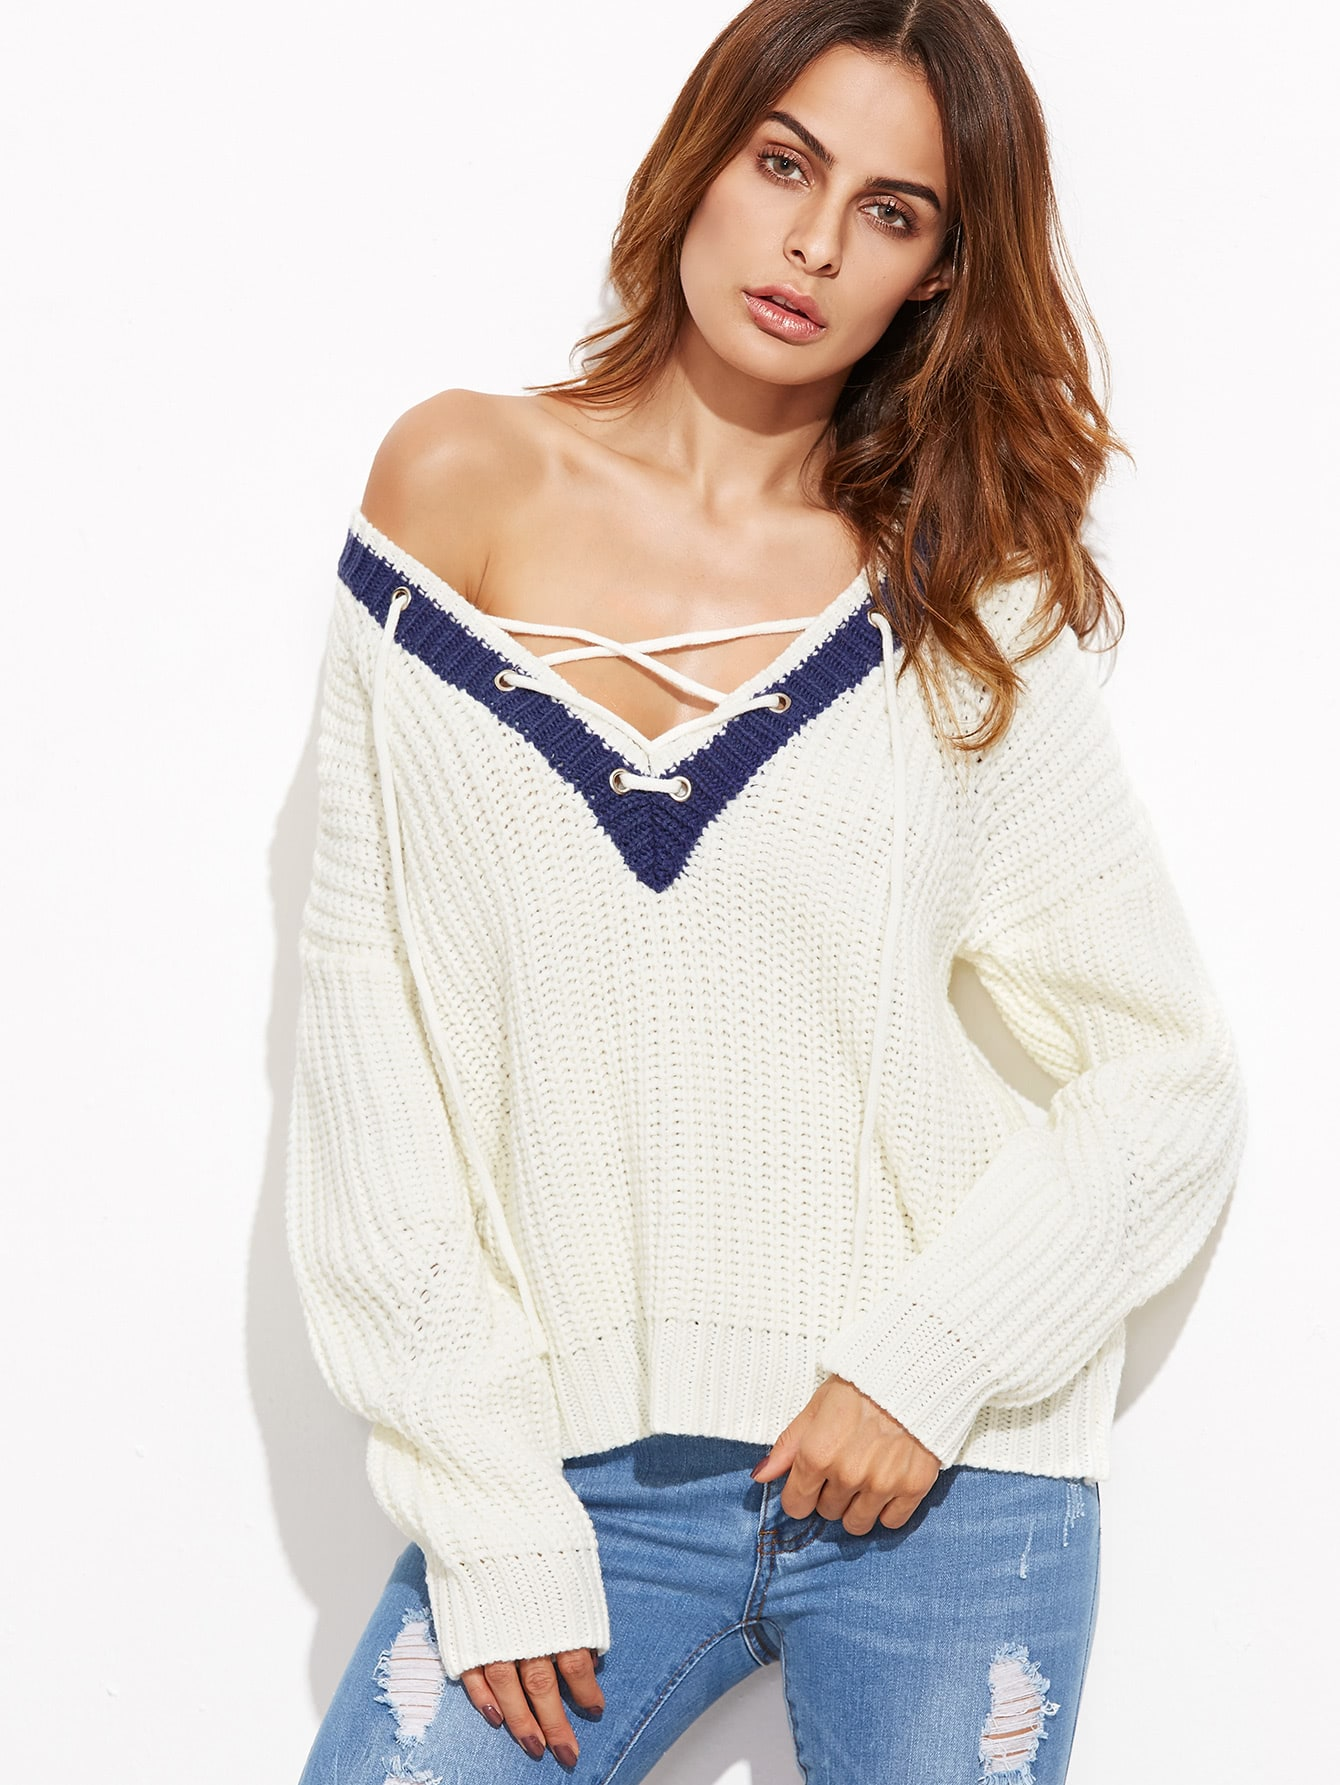 White Ribbed Knit Contrast Lace Up V Neck Sweater sweater161007460